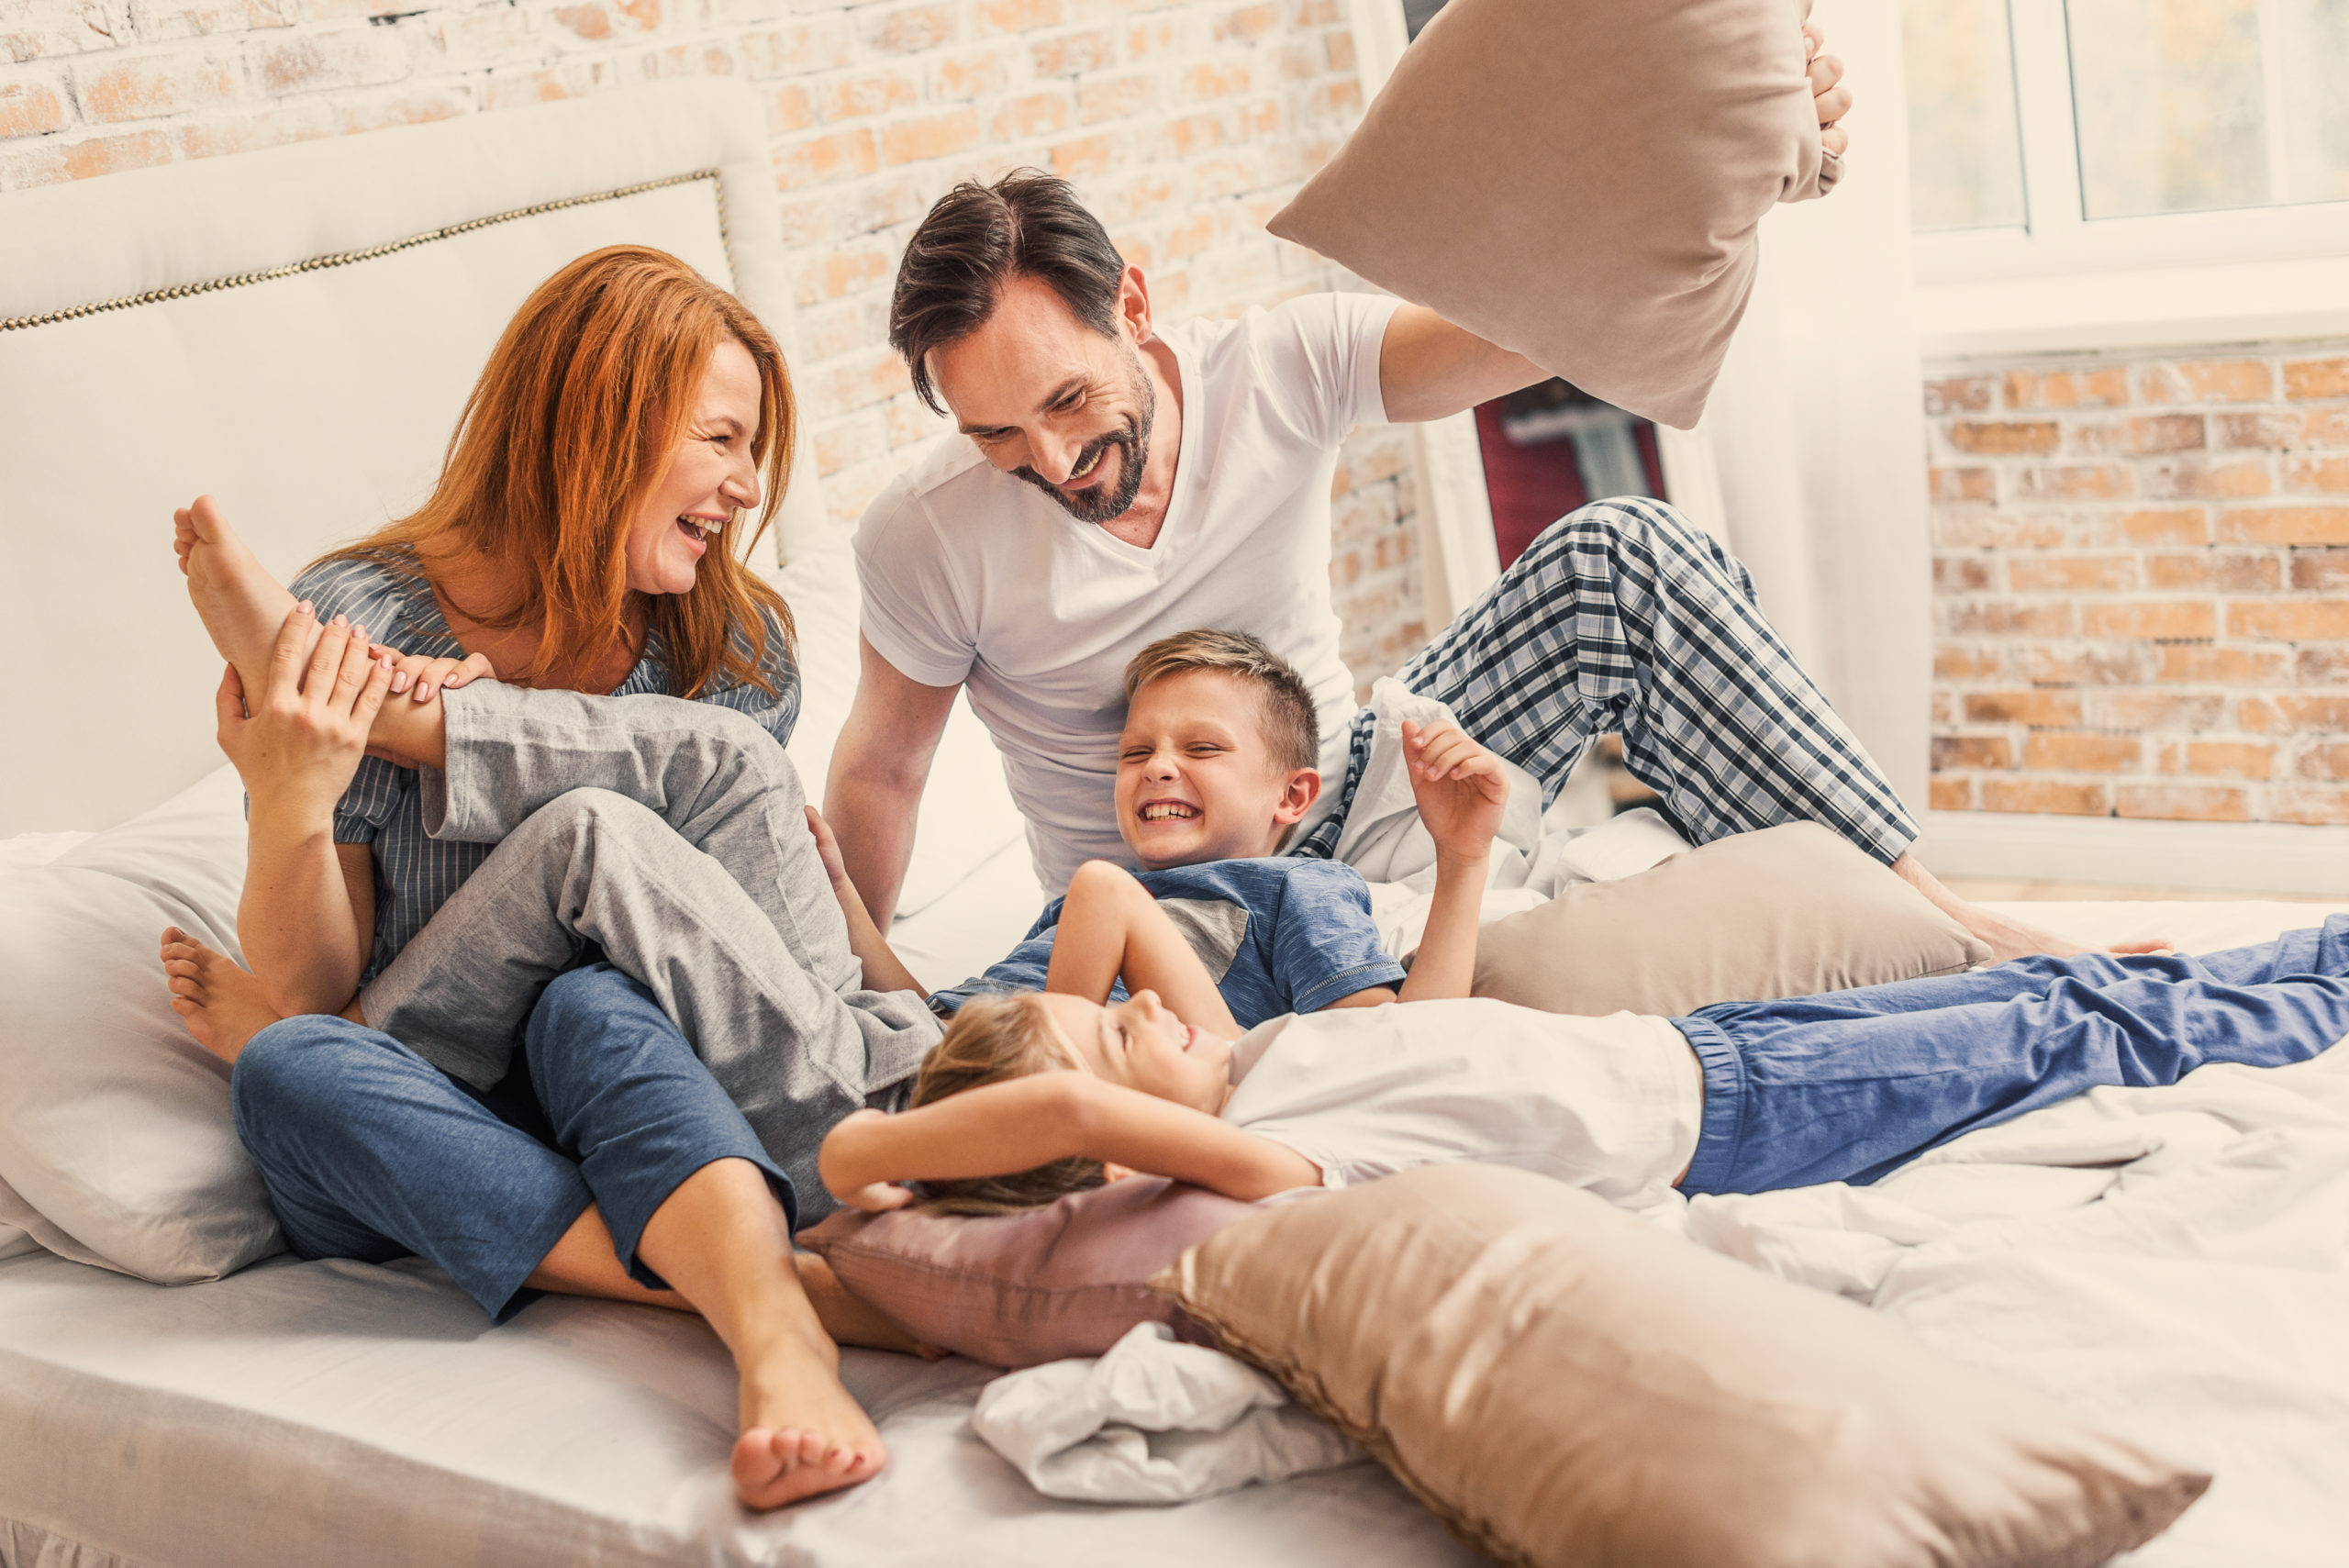 Joyful parents spending time with their smiling children while playing with pillows in bed